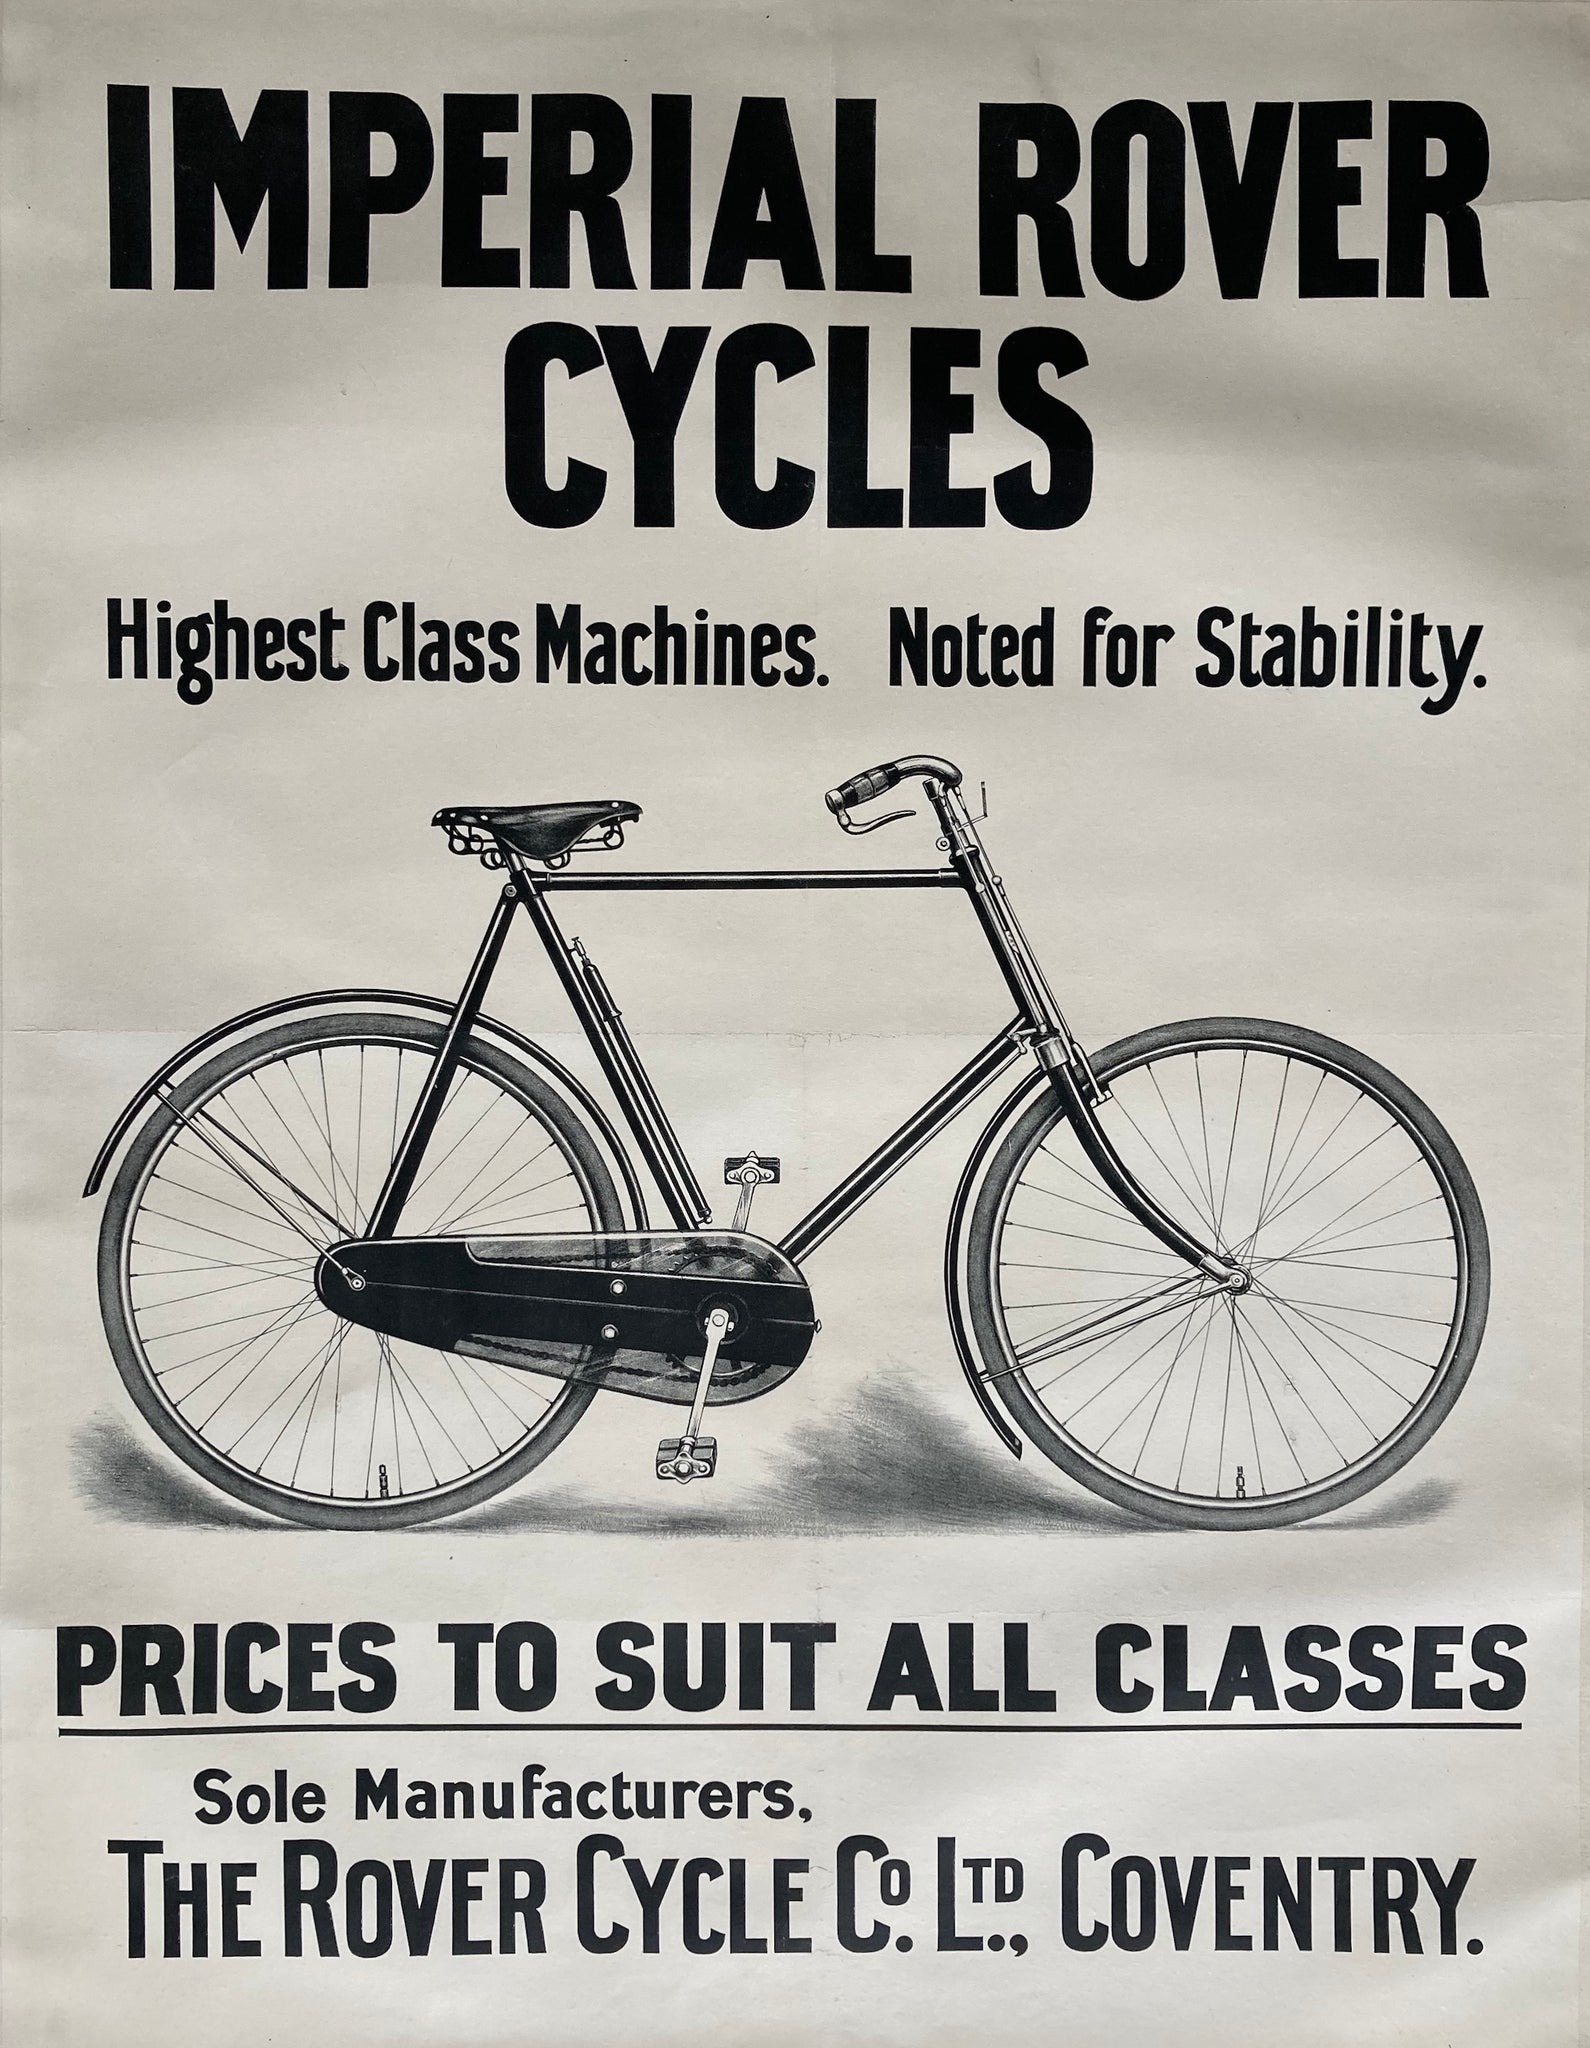 Imperial Rover Cycles